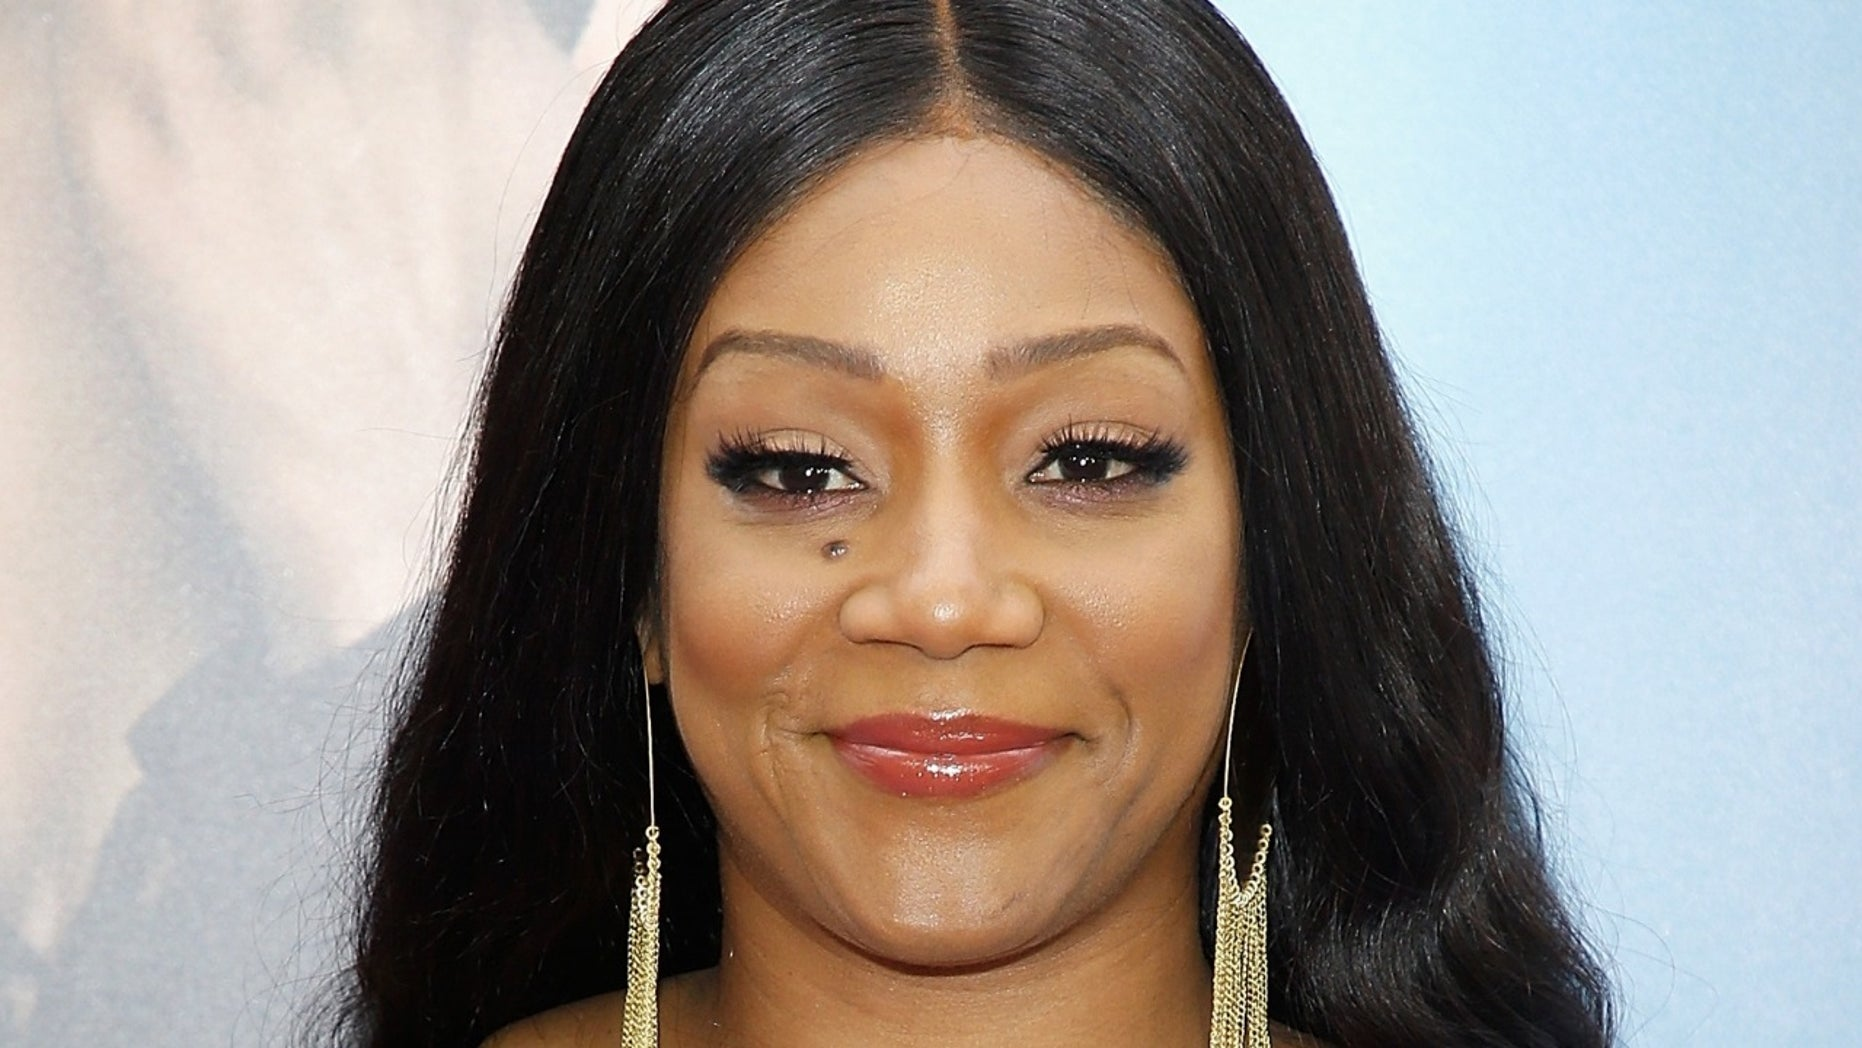 Tiffany Haddish Bombs New Year's Eve Performance, Fans Come to Her Defense